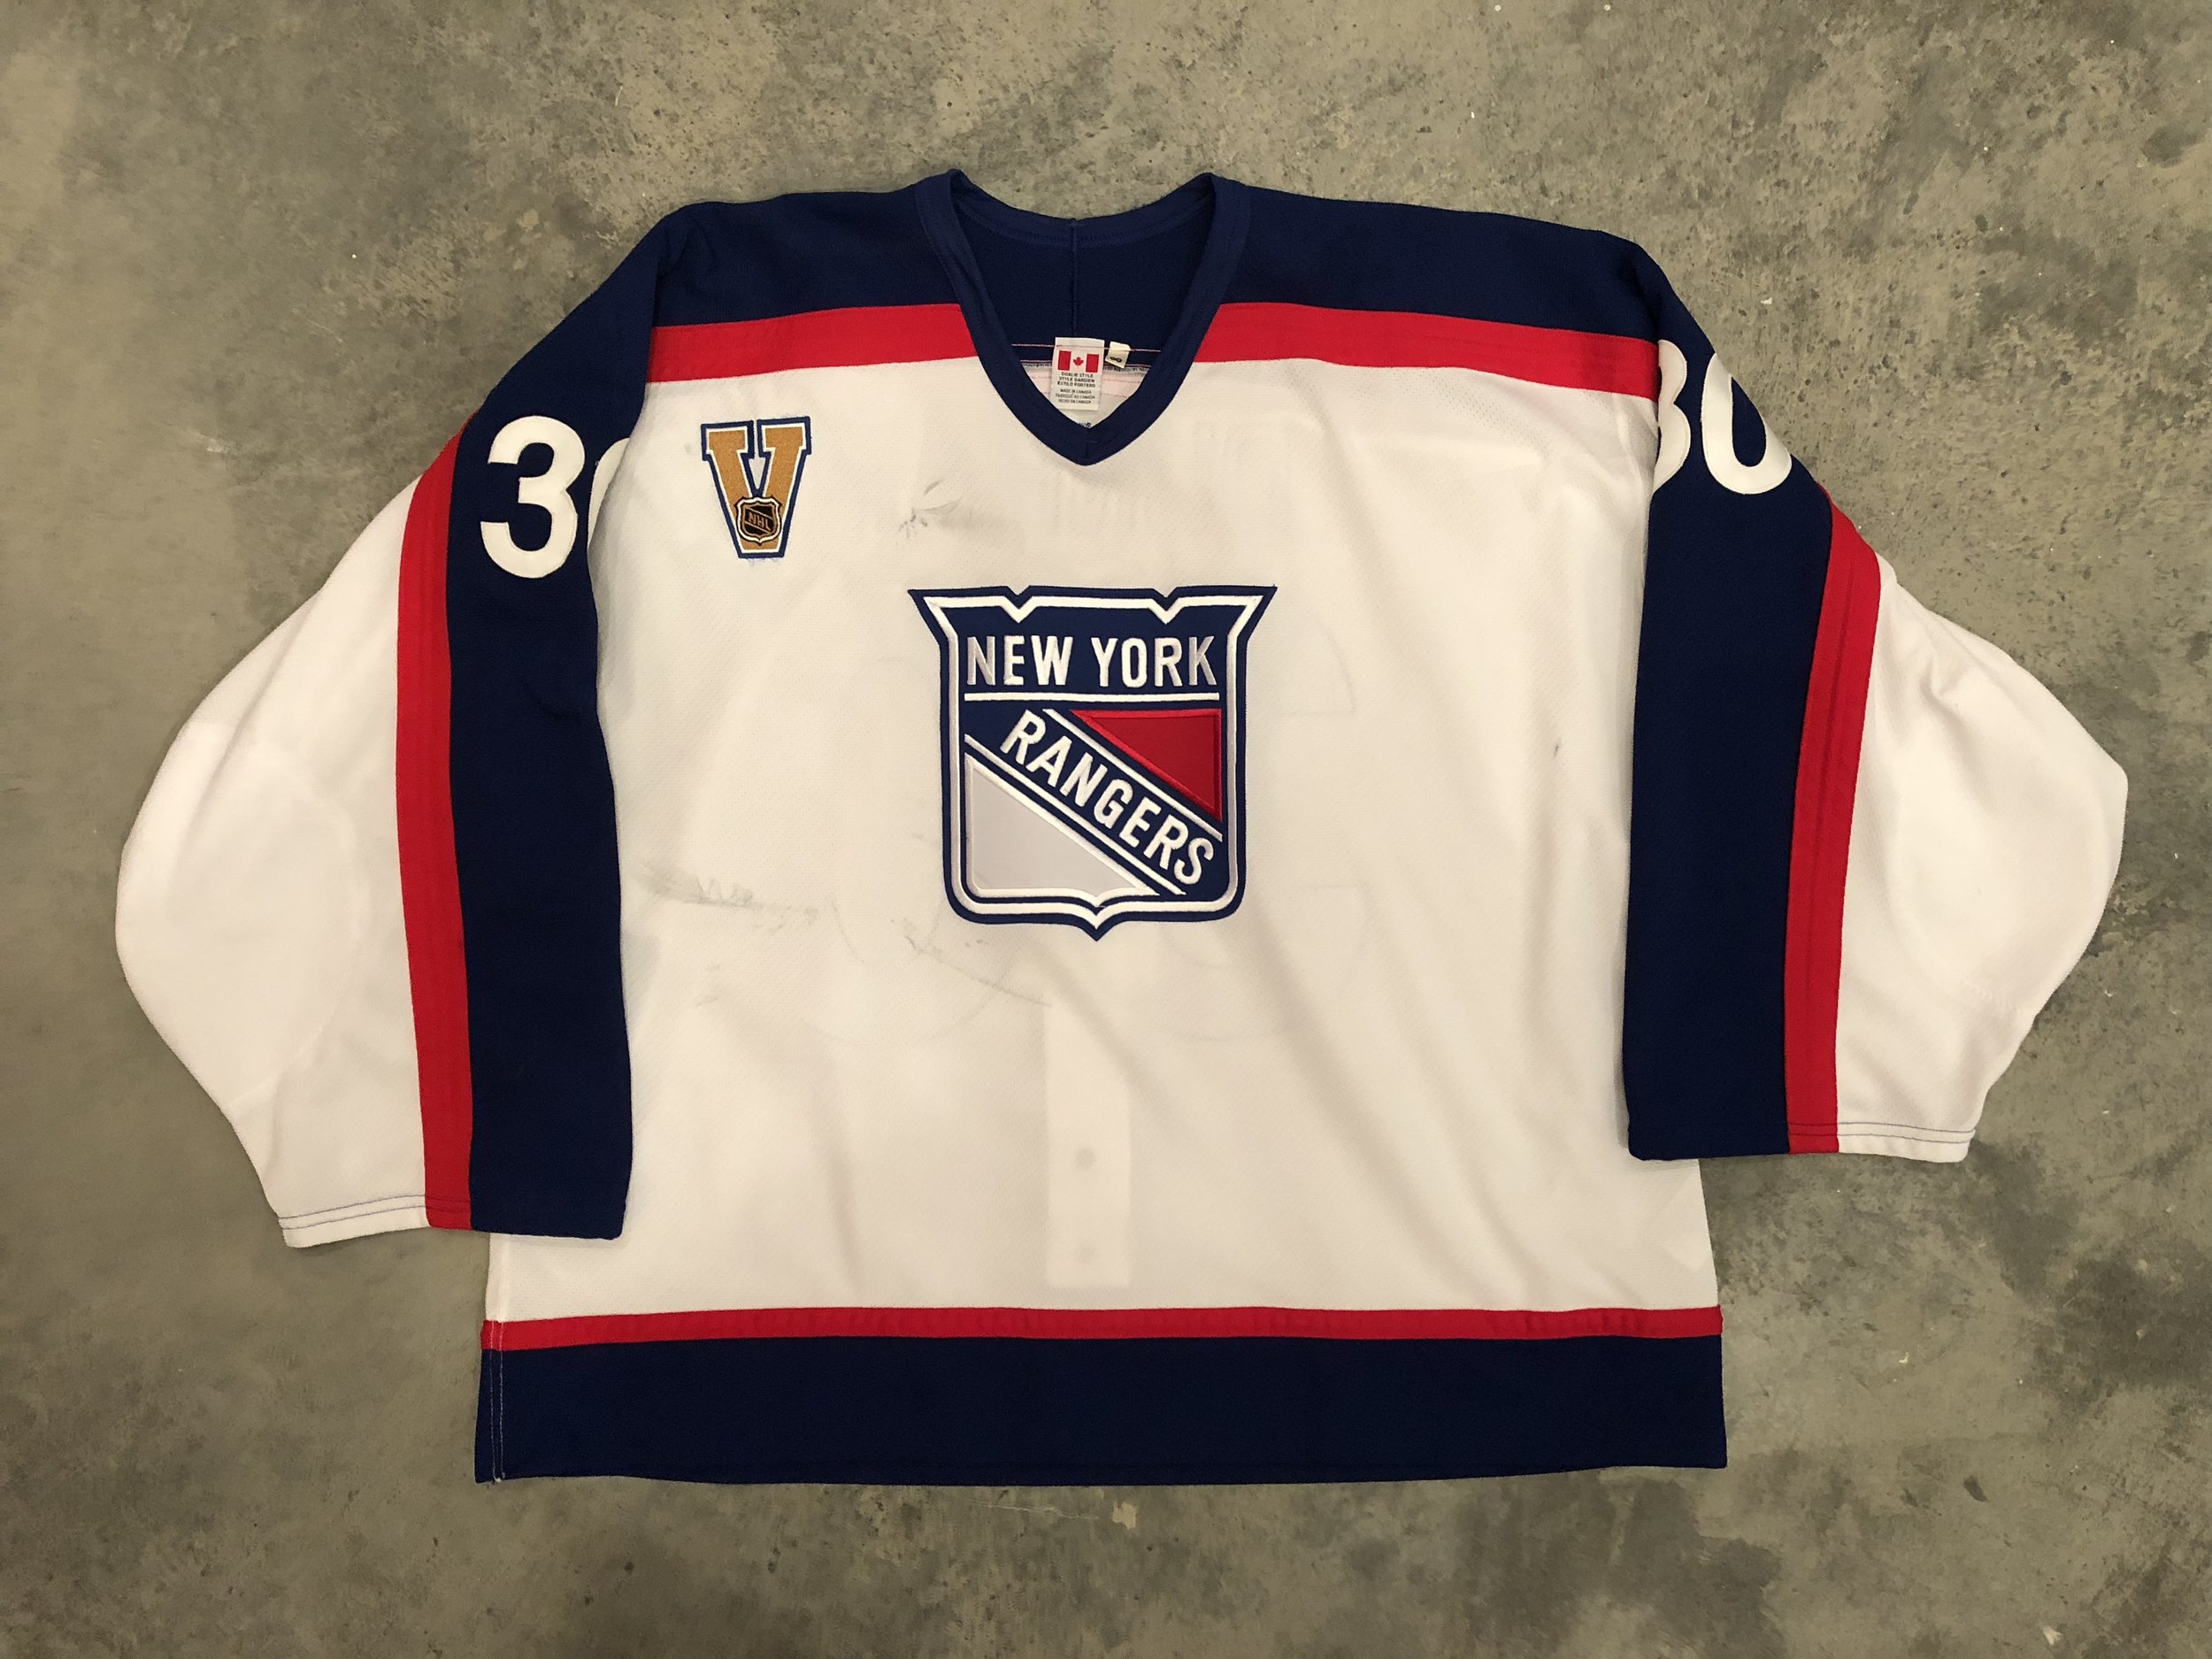 2003-04 Mike Dunham Game Worn Vintage Home Jersey